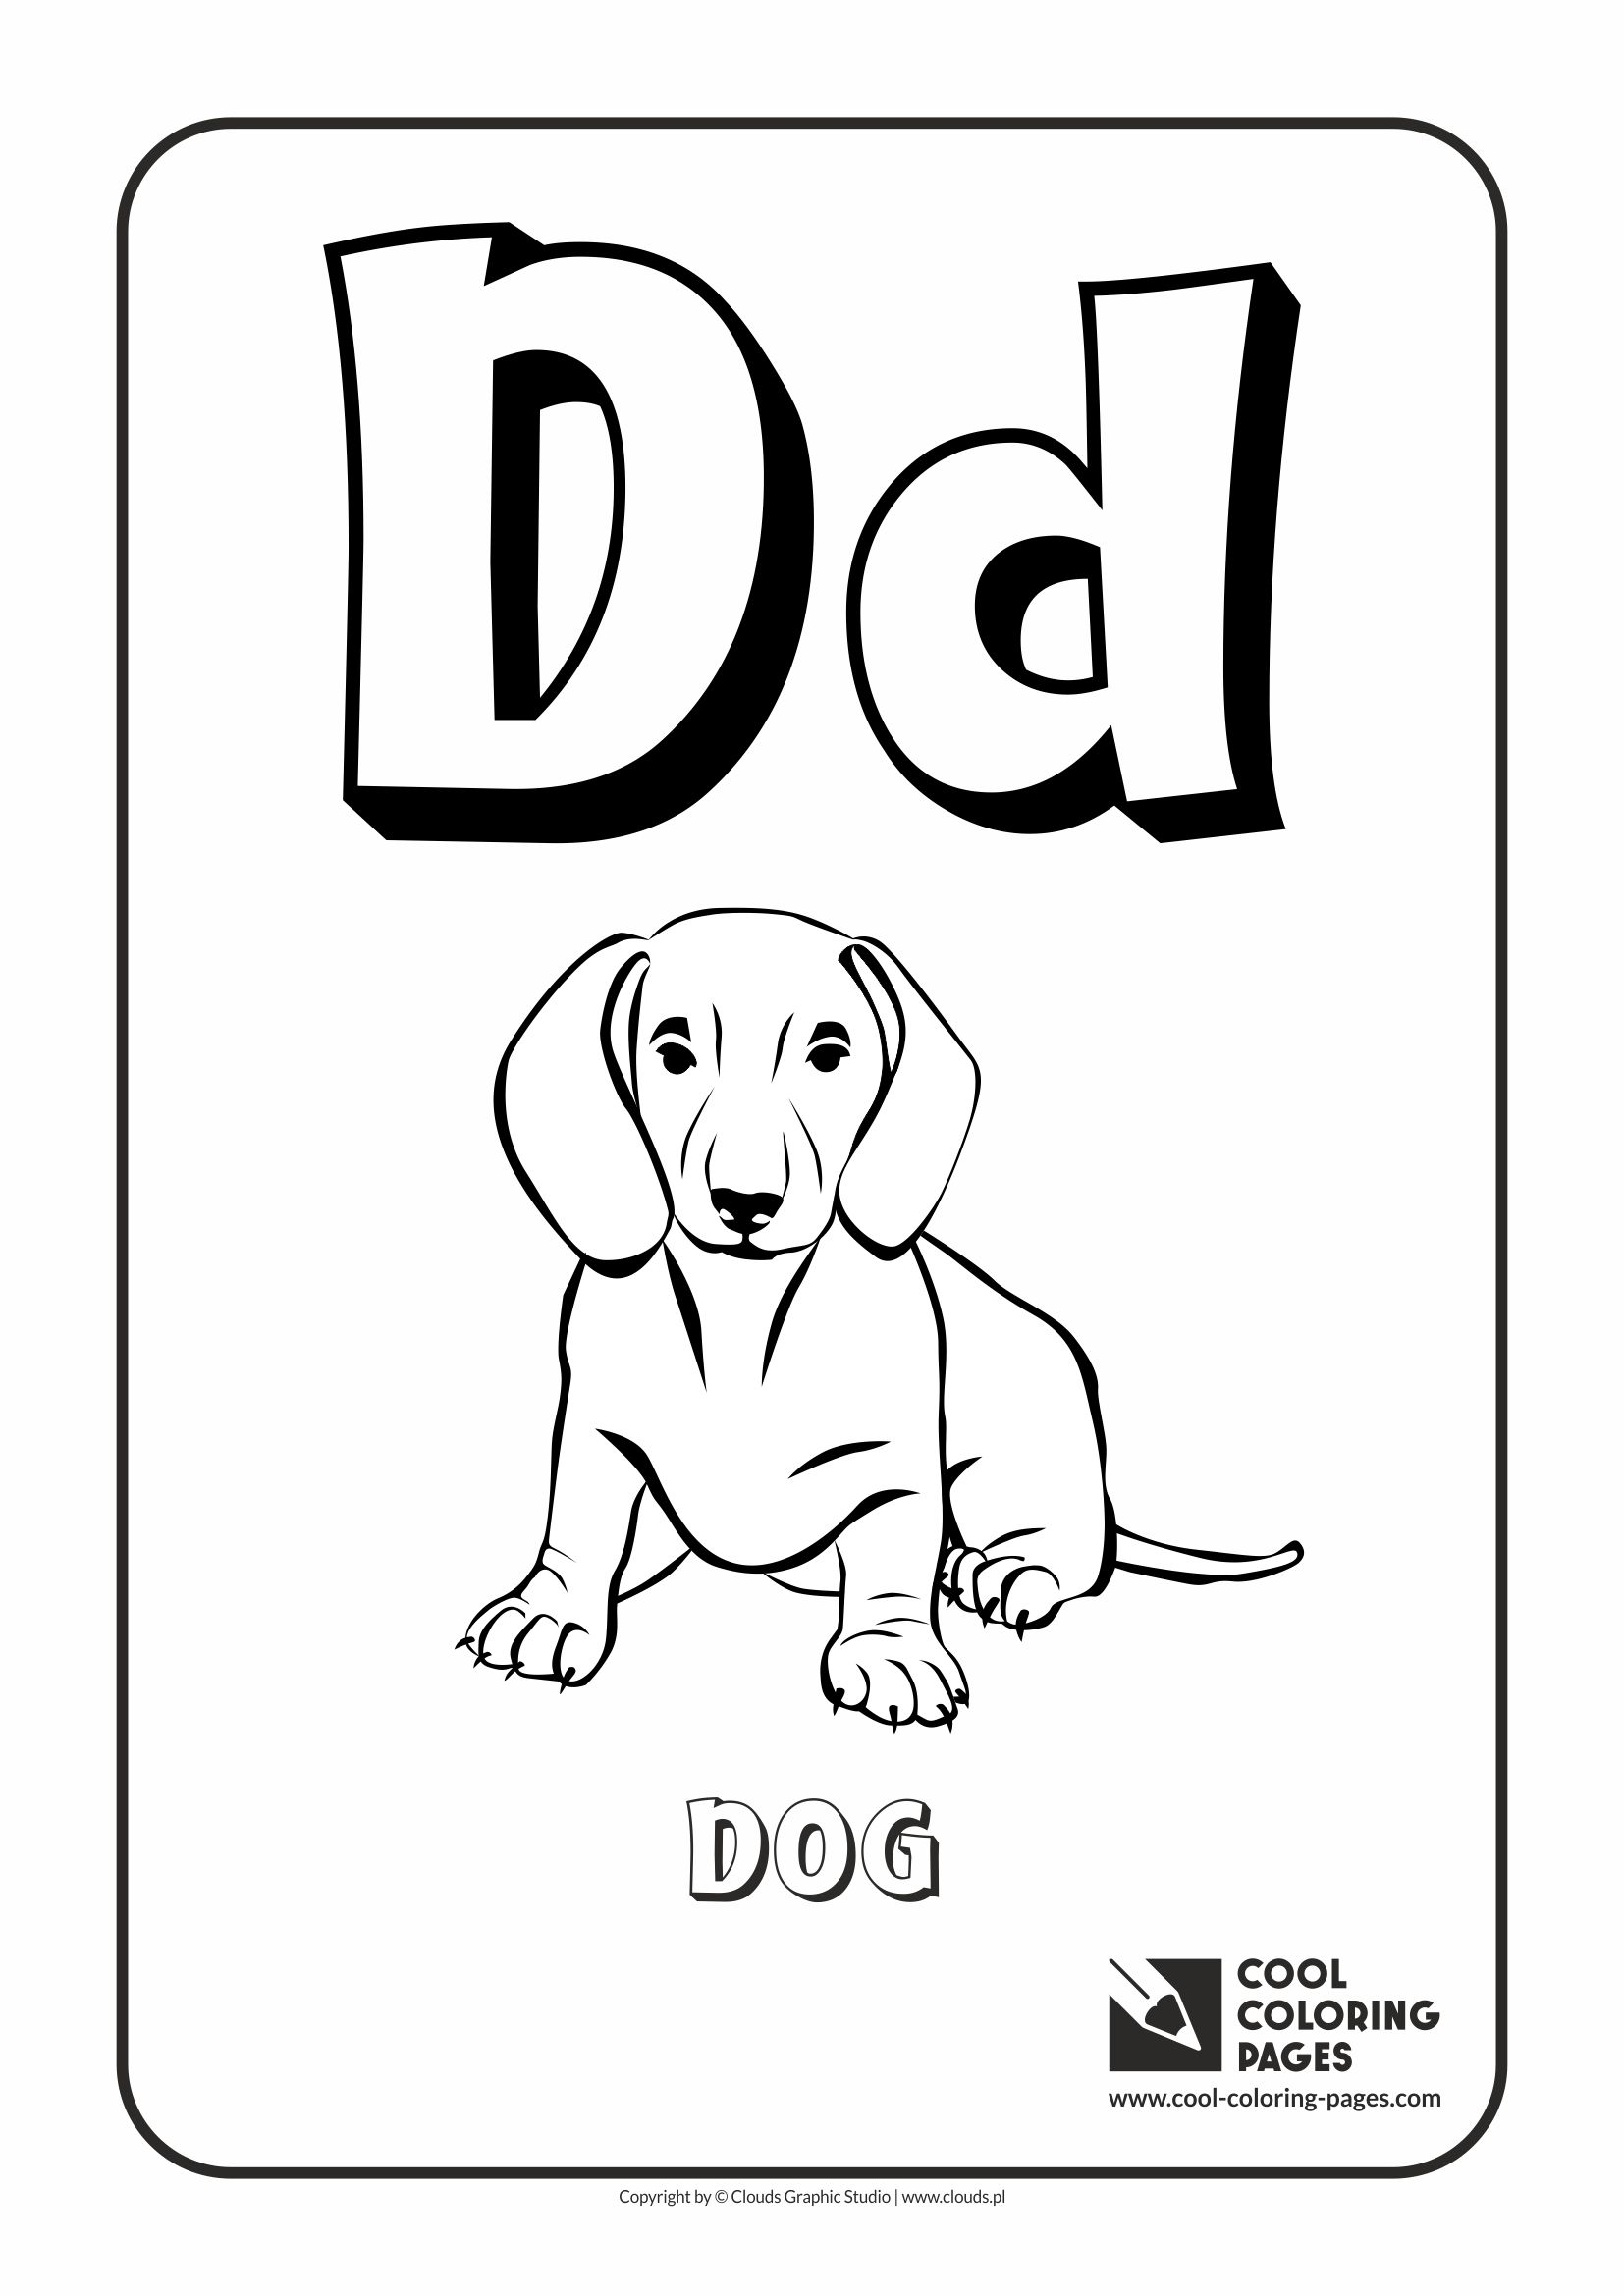 cool coloring pages alphabet letter d coloring page with letter d - Cool Color Pages